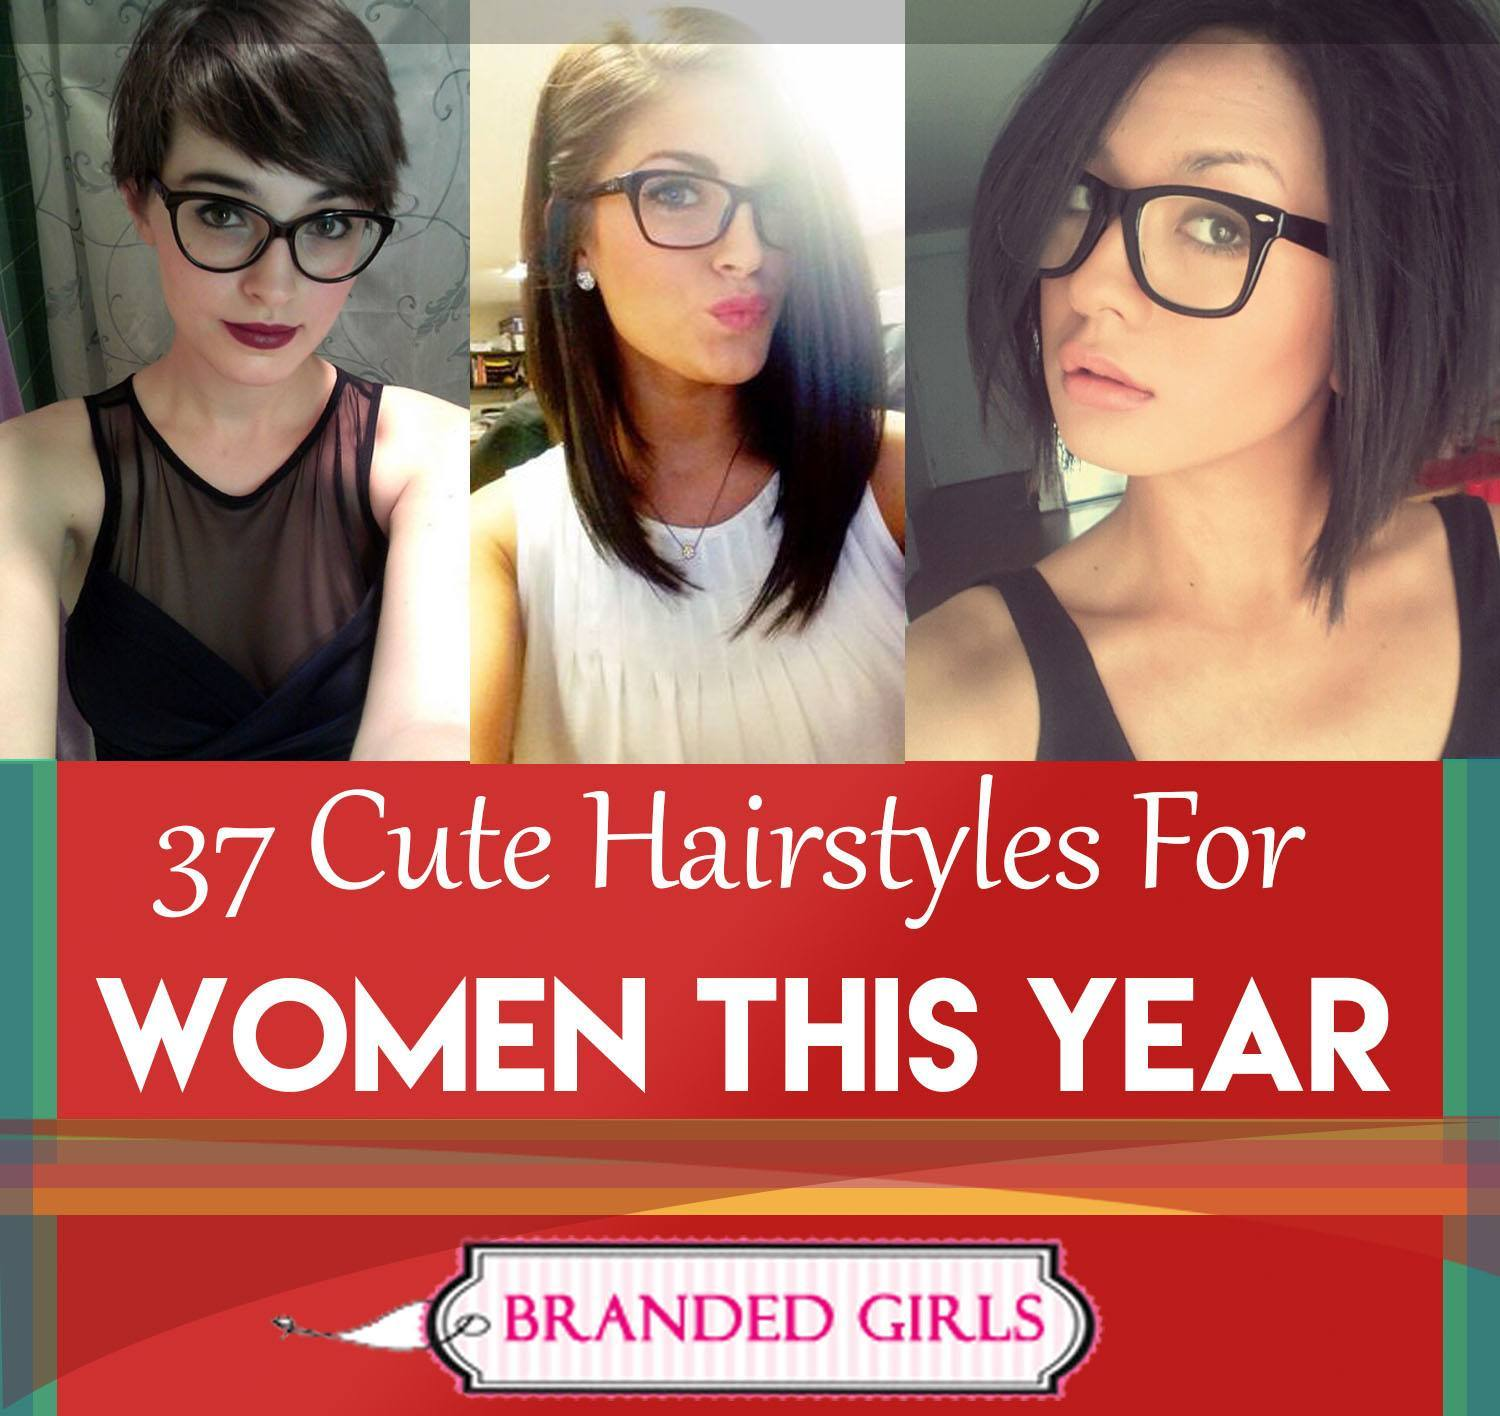 37-cute-hairstyles-for-women-this-year-1 37 Cute Hairstyles for Women with Glasses this Year